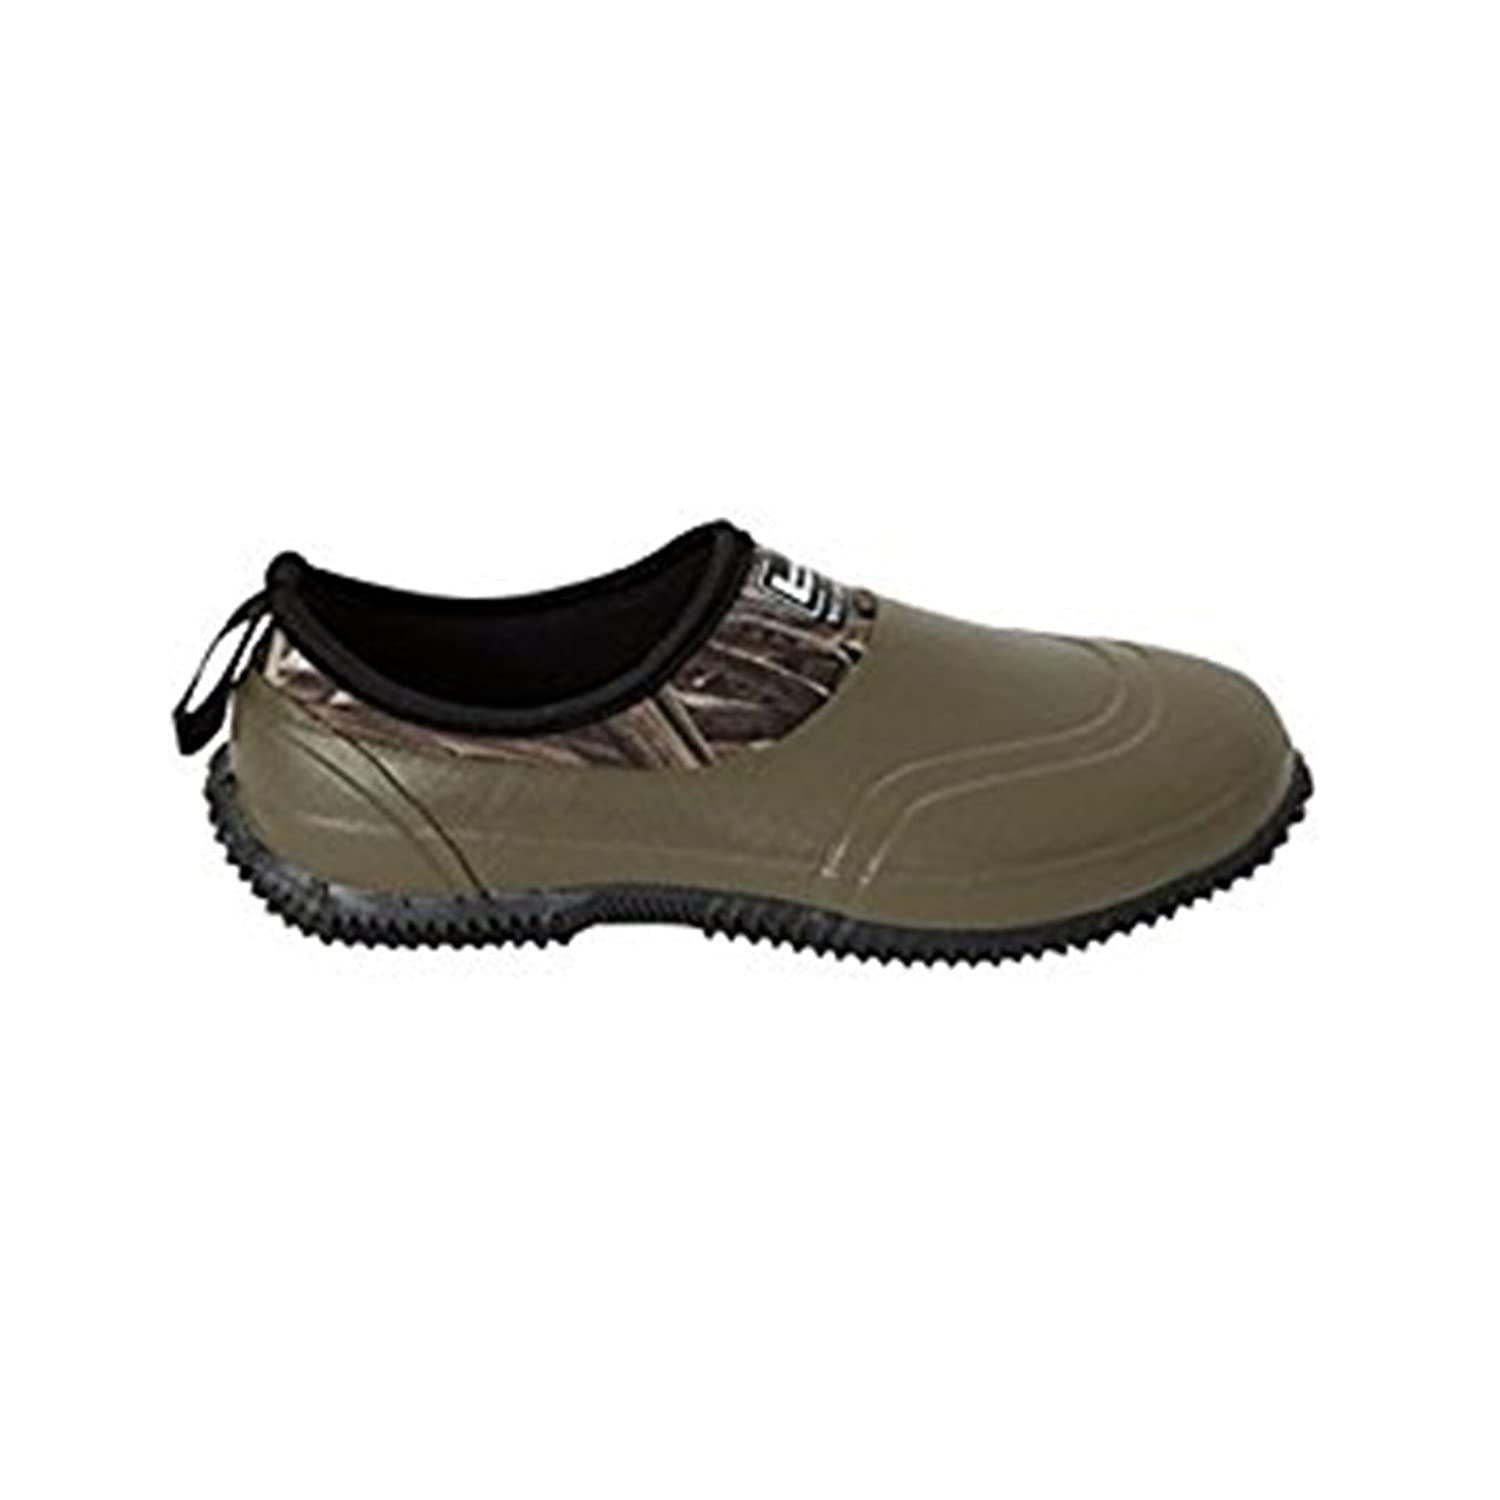 46a57c7dcf3f48 Men s Banded Tactical Water Shoes 100% Waterproof Lodge Shoe Size 8 low-cost